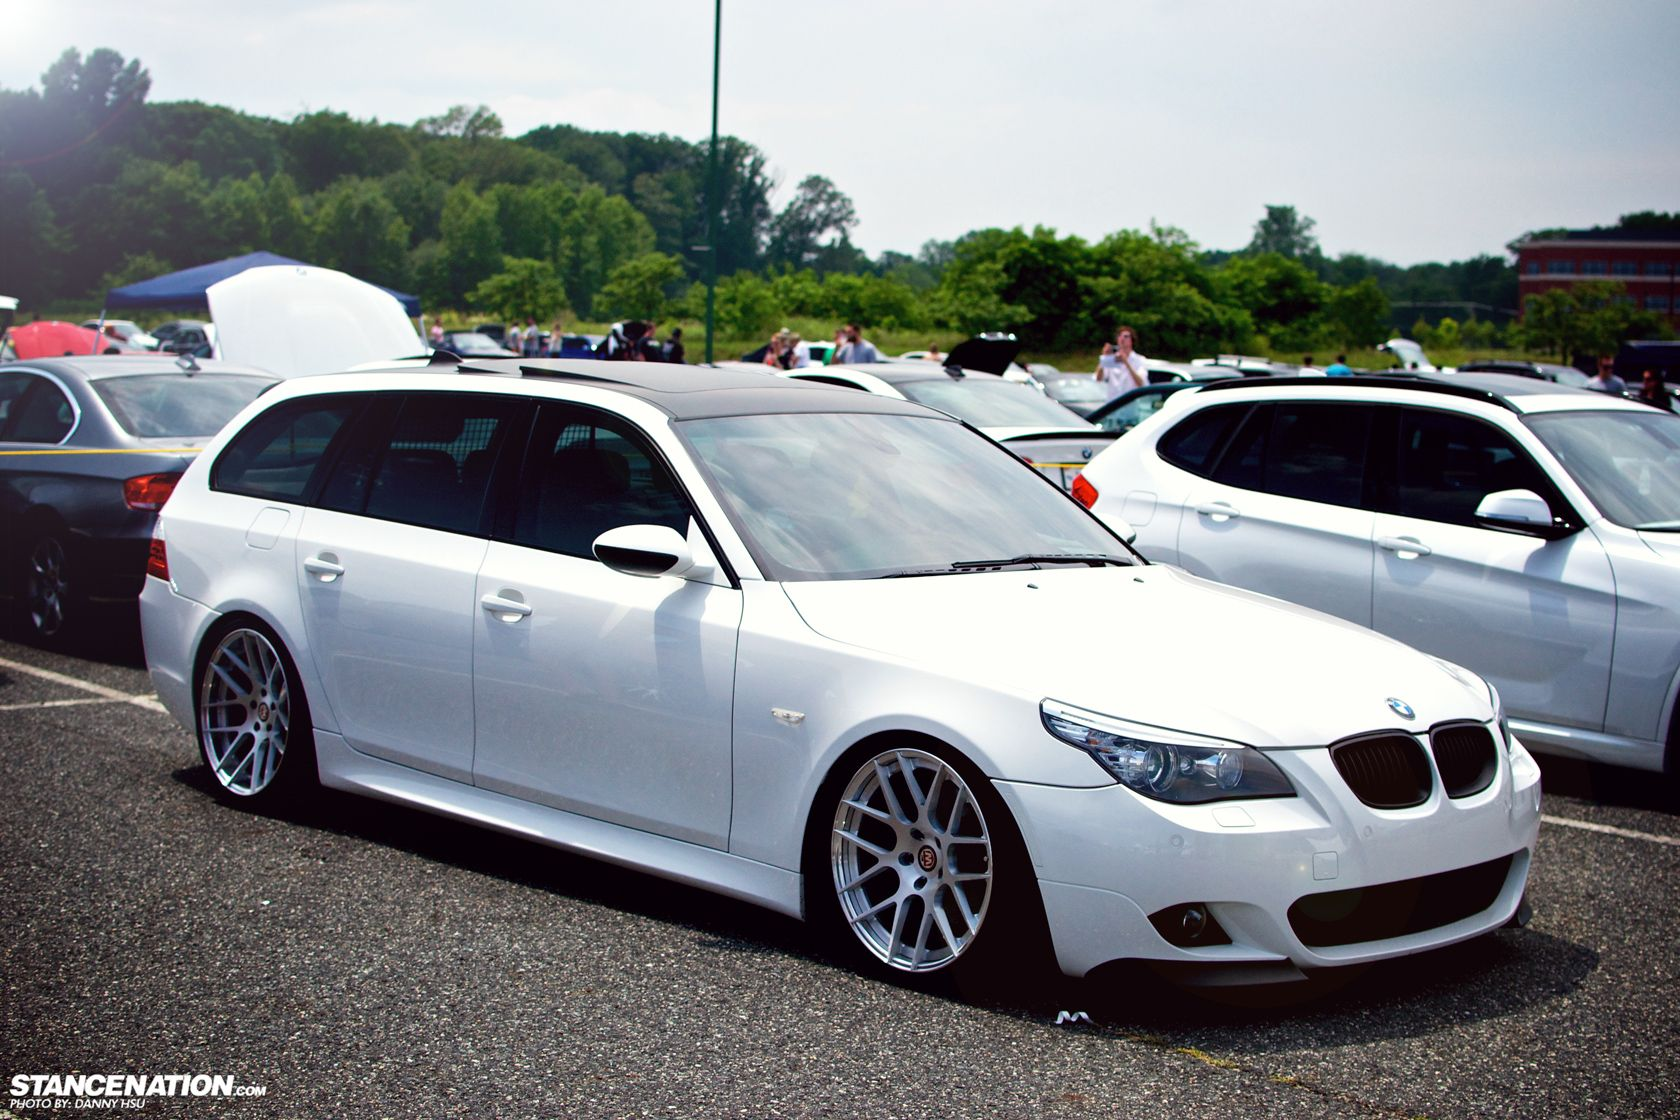 Bimmer 5 Series Wagon Vip Stanced Pinterest Bmw Cars And Touring Motor Car